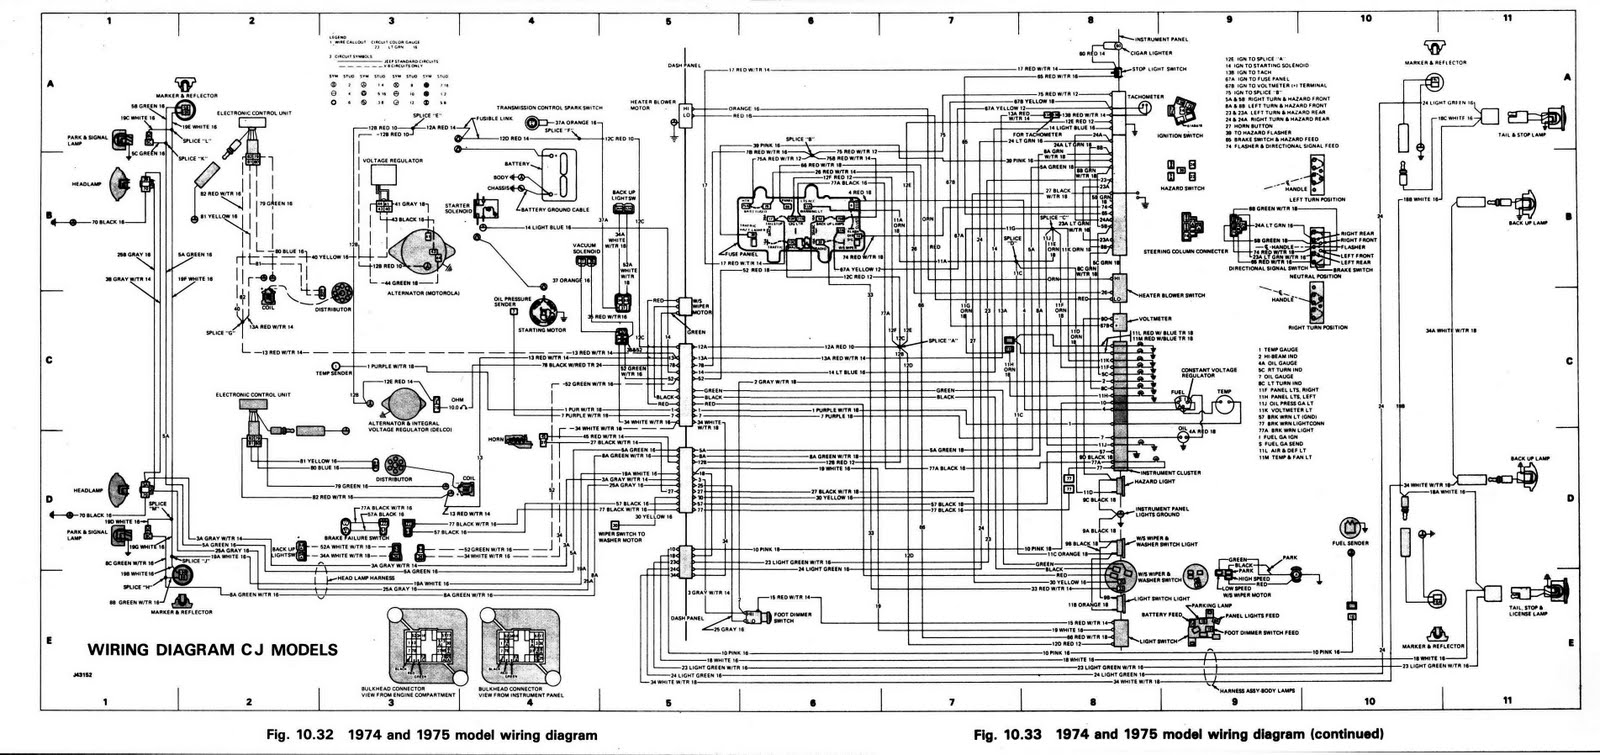 1958 jeep cj5 wiring schematic just another wiring diagram blog • 1965 jeep cj5 wiring diagram wiring library rh 31 bobstars de 1972 jeep cj5 wiring diagram 1972 jeep cj5 wiring diagram